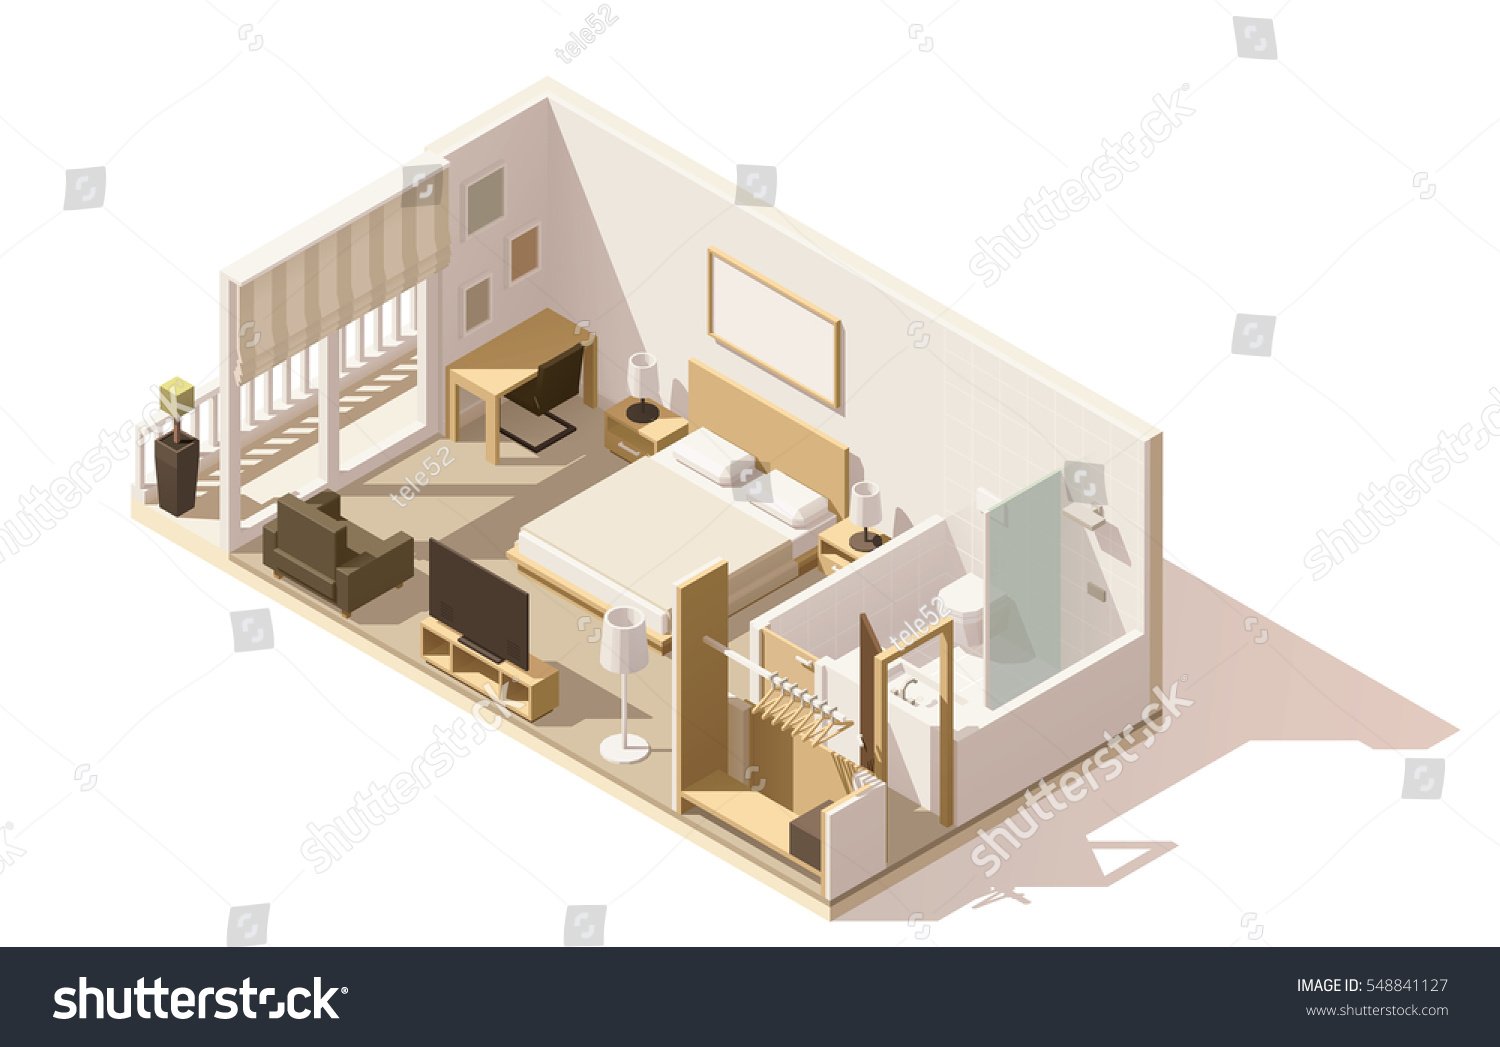 Vector Isometric Low Poly Hotel Room Stock Photo (Photo, Vector ...